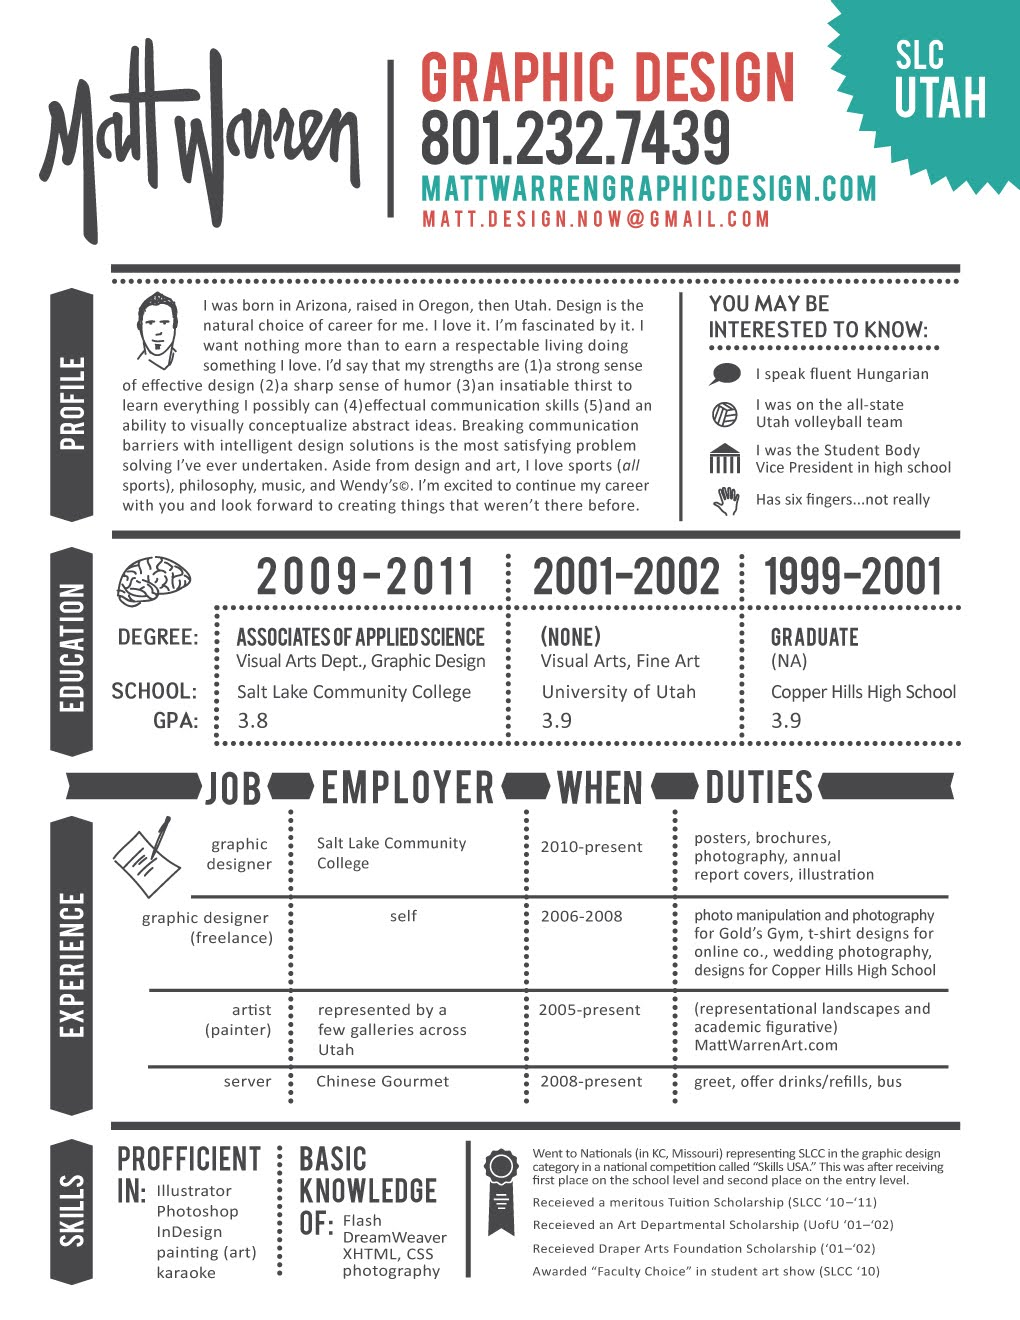 Opposenewapstandardsus  Pleasant  Images About Hire Me On Pinterest  Graphic Designer Resume  With Exciting  Images About Hire Me On Pinterest  Graphic Designer Resume Resume Design And Resume With Agreeable Skills Section Of A Resume Also Professional Resume Templates Free In Addition Ciso Resume And Bullet Point Resume As Well As Need To Make A Resume Additionally Resume Examples Administrative Assistant From Pinterestcom With Opposenewapstandardsus  Exciting  Images About Hire Me On Pinterest  Graphic Designer Resume  With Agreeable  Images About Hire Me On Pinterest  Graphic Designer Resume Resume Design And Resume And Pleasant Skills Section Of A Resume Also Professional Resume Templates Free In Addition Ciso Resume From Pinterestcom